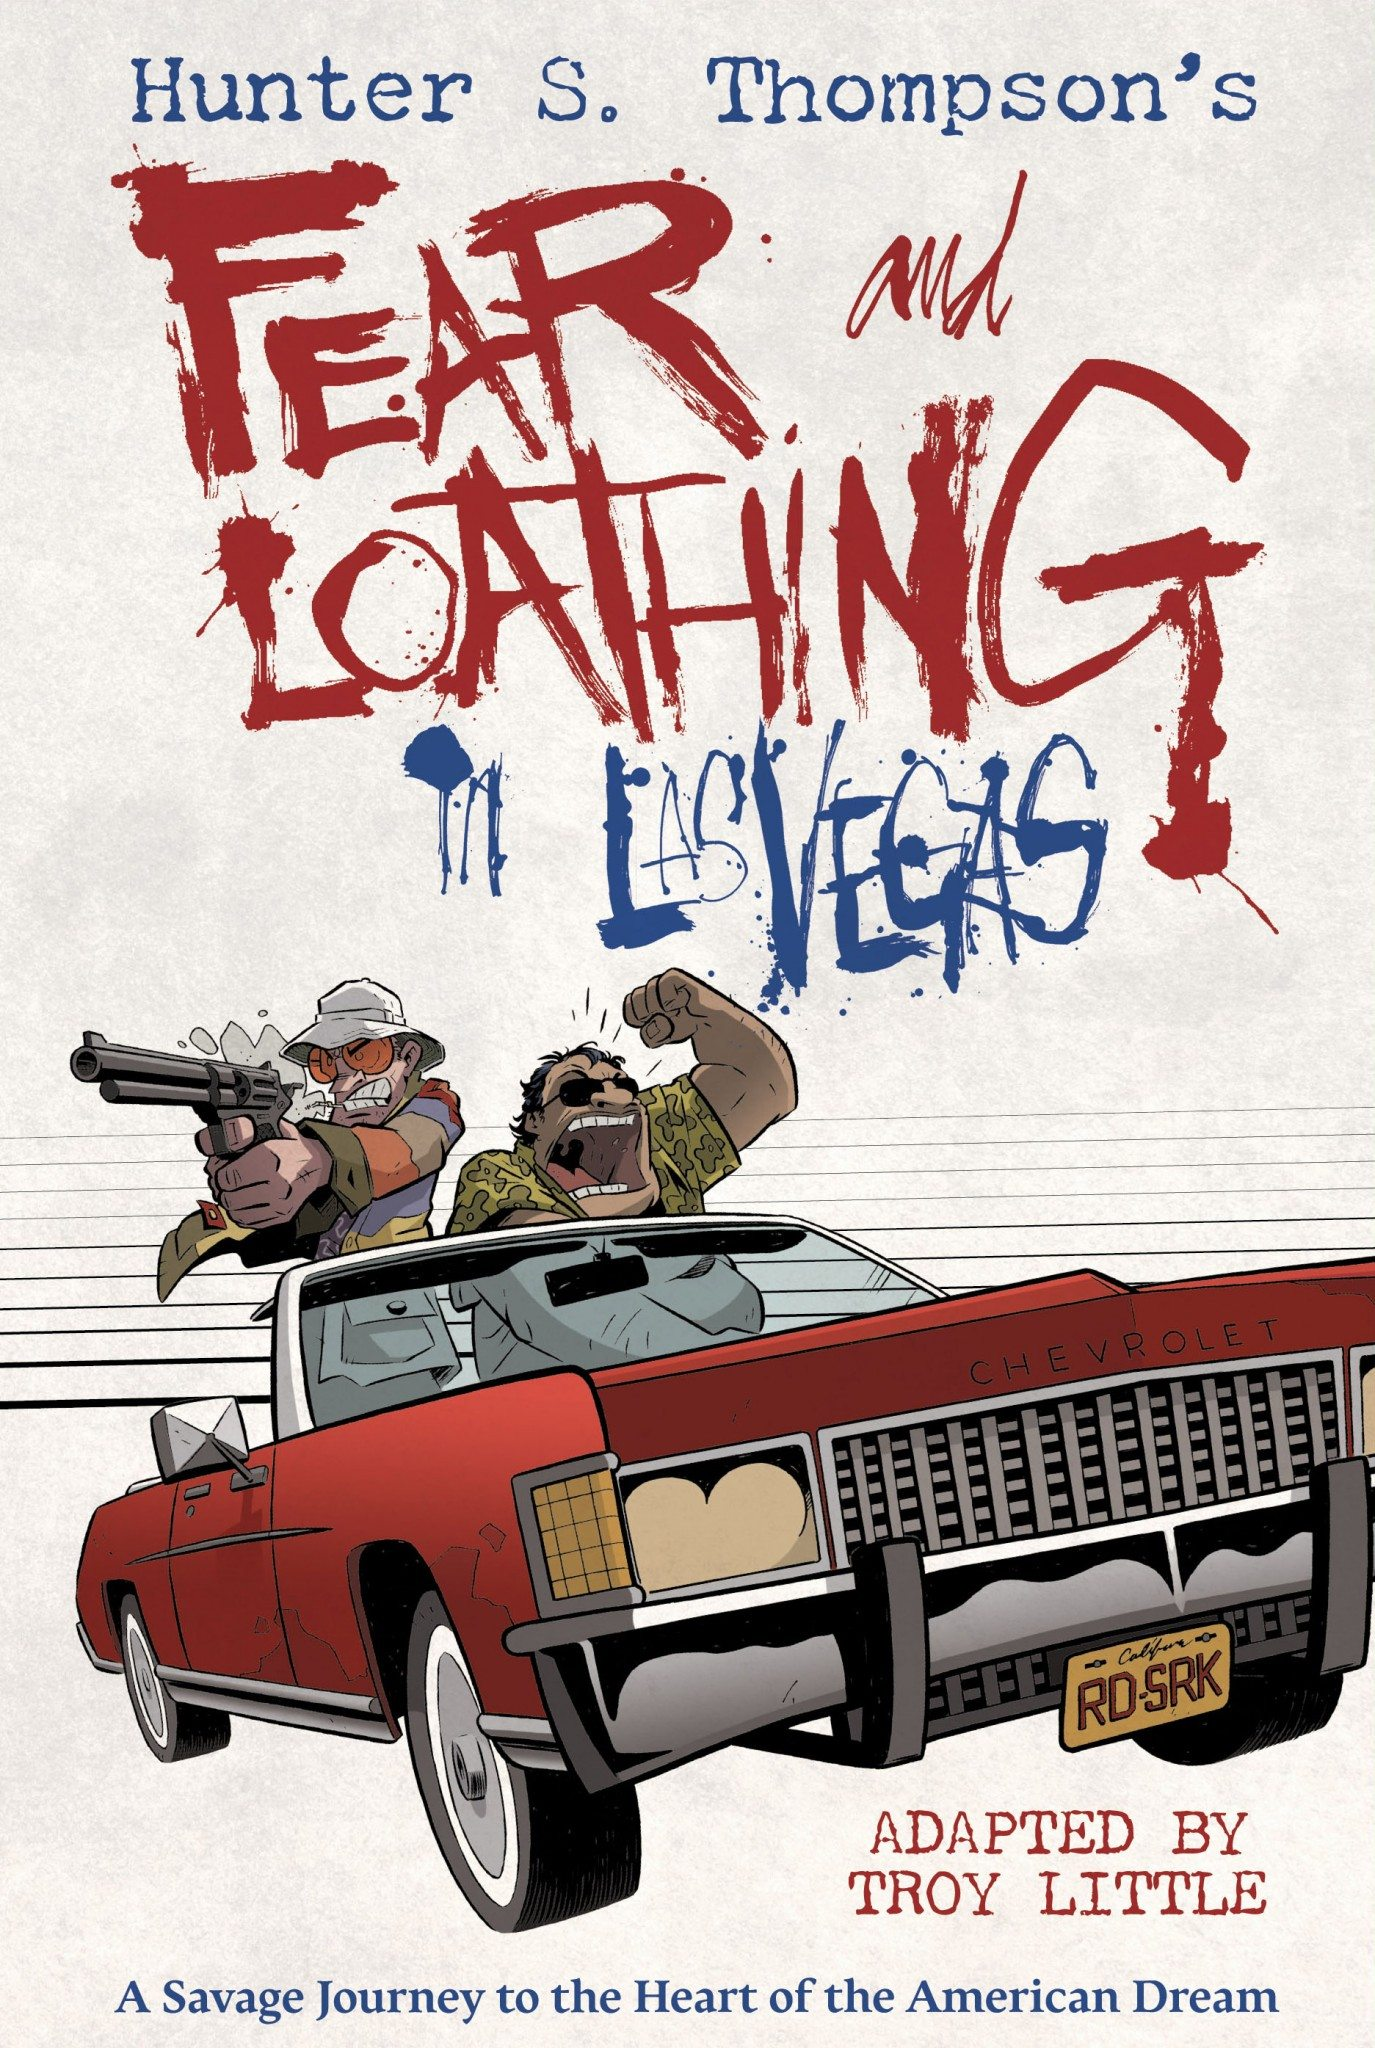 a review of fear and loathing in las vegas What do people think of fear and loathing in las vegas see opinions and rankings about fear and loathing in las vegas across various lists and topics.